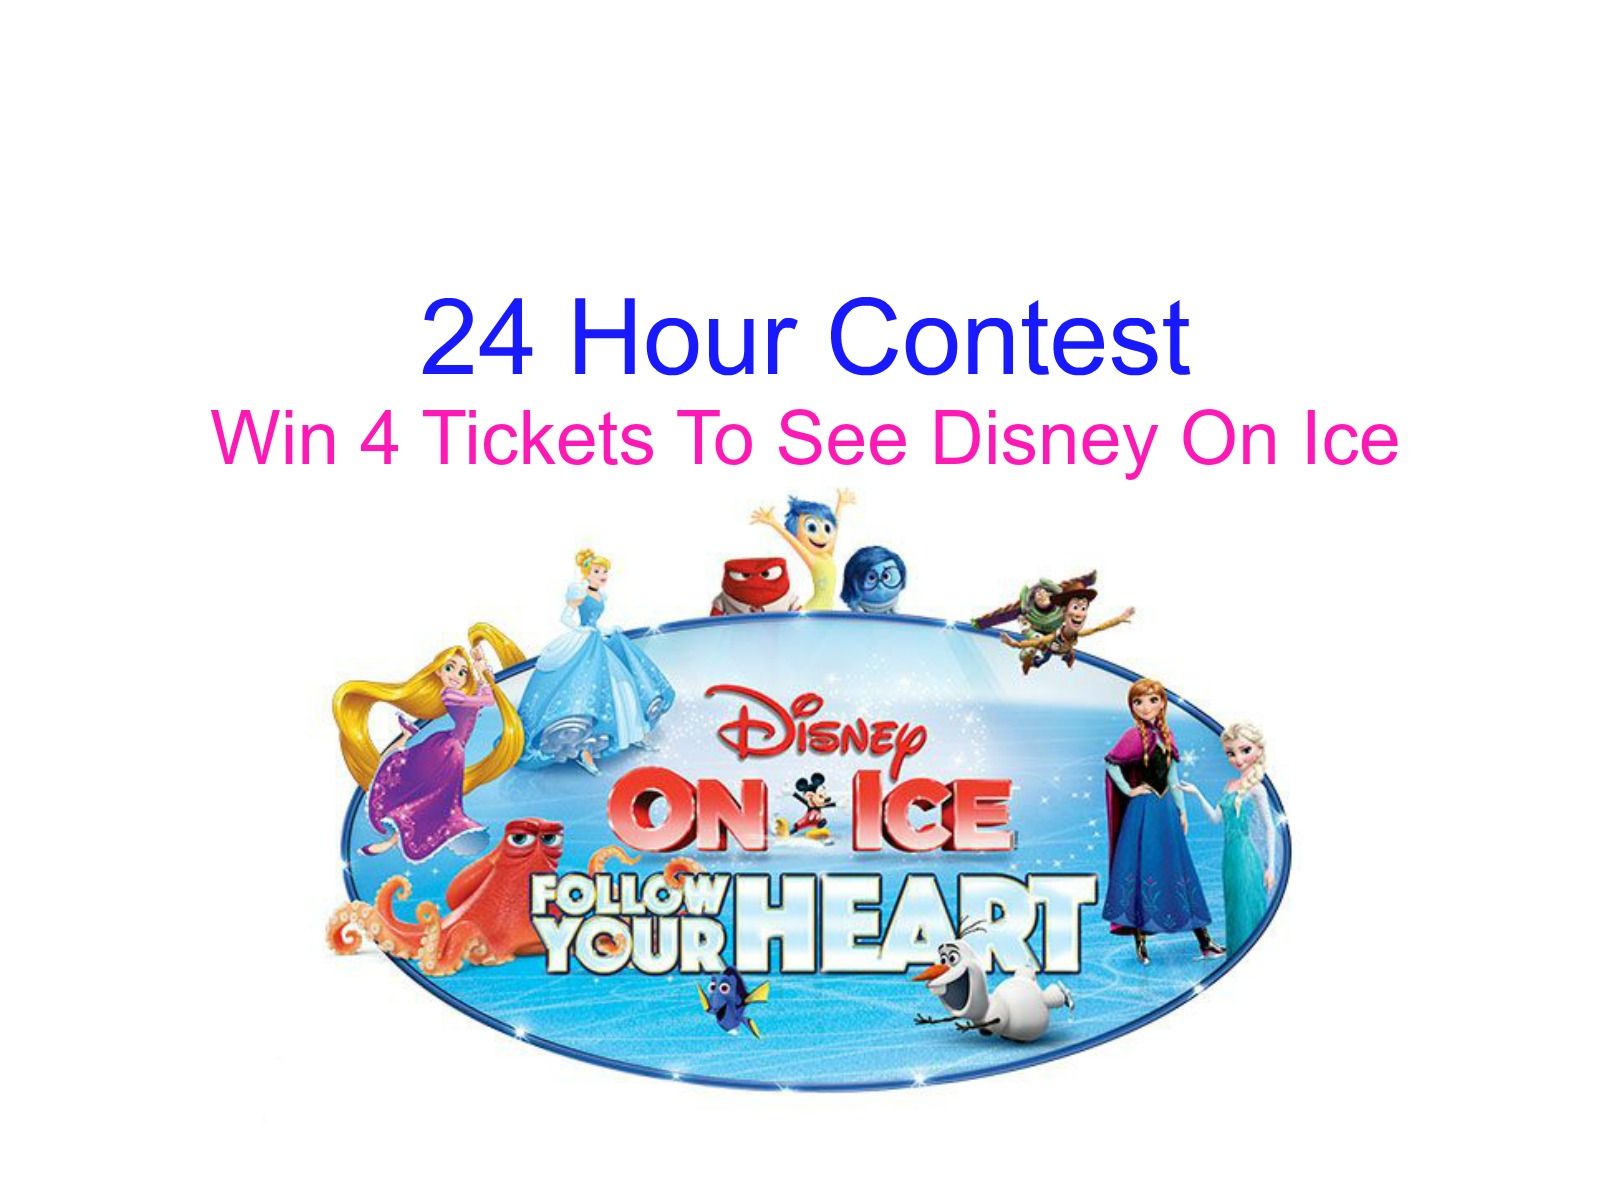 24 Hour Contest: Win 4 Tickets To Disney On Ice